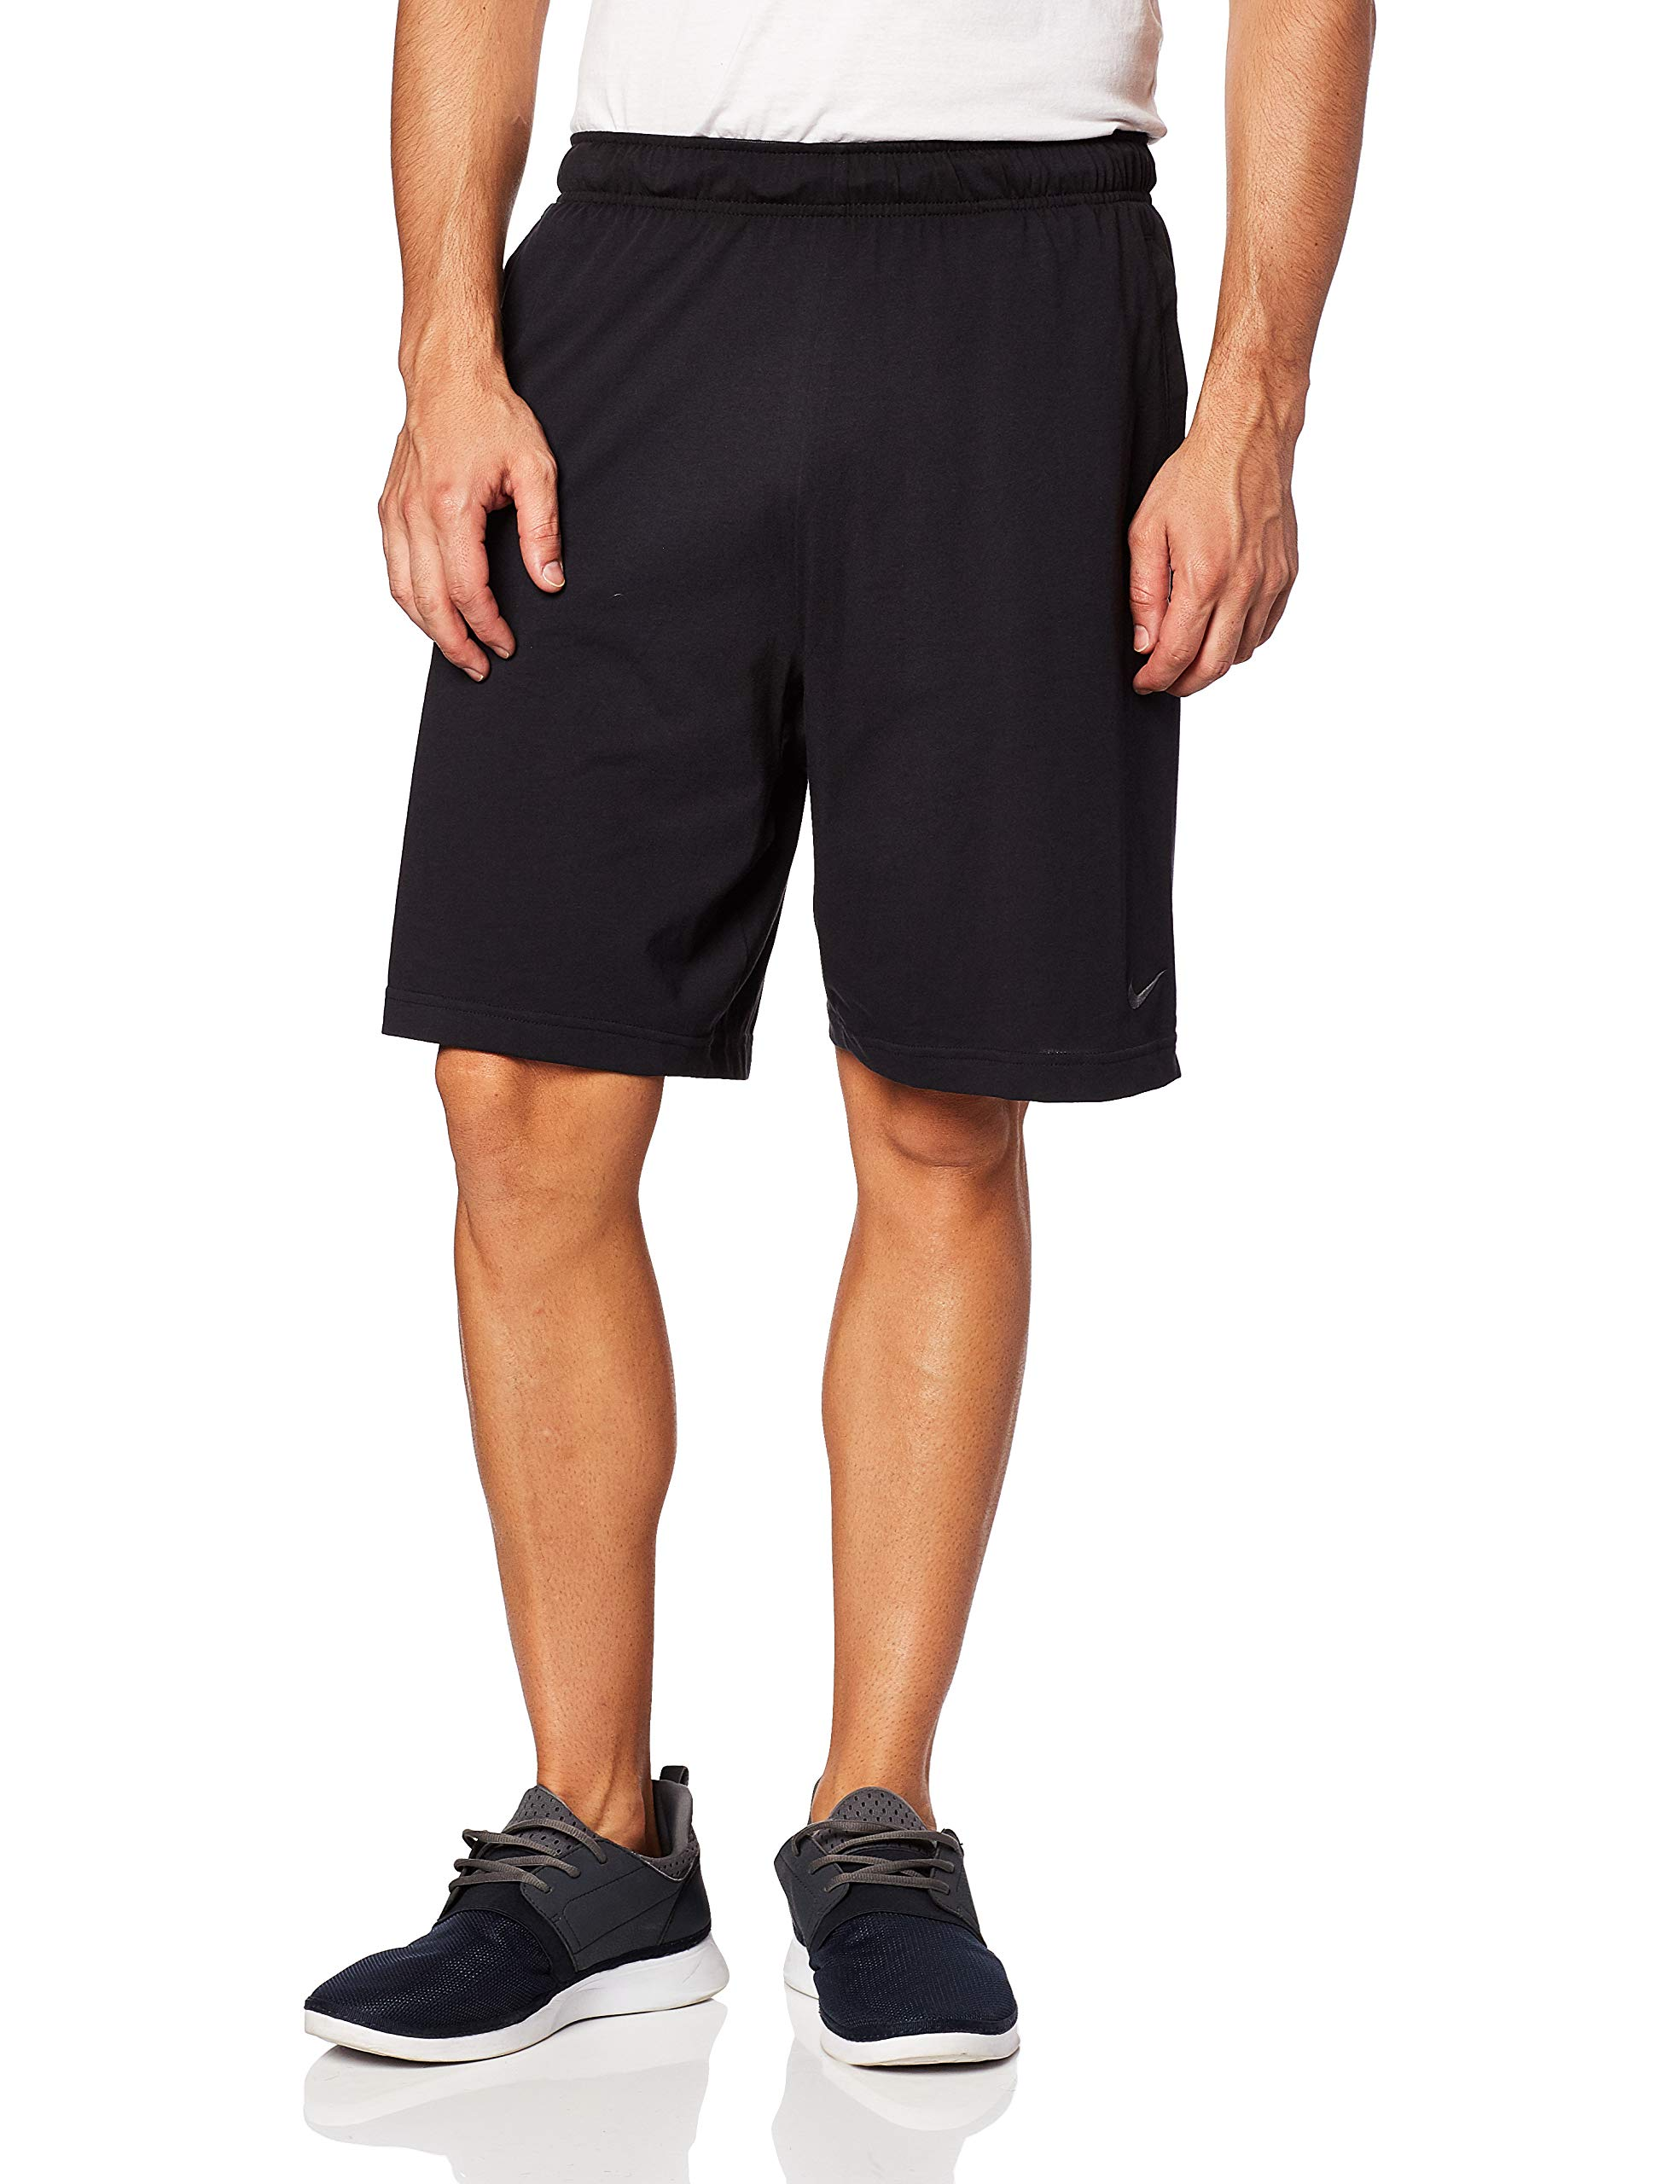 Nike Men's Training Short Black/Anthracite Size Small by Nike